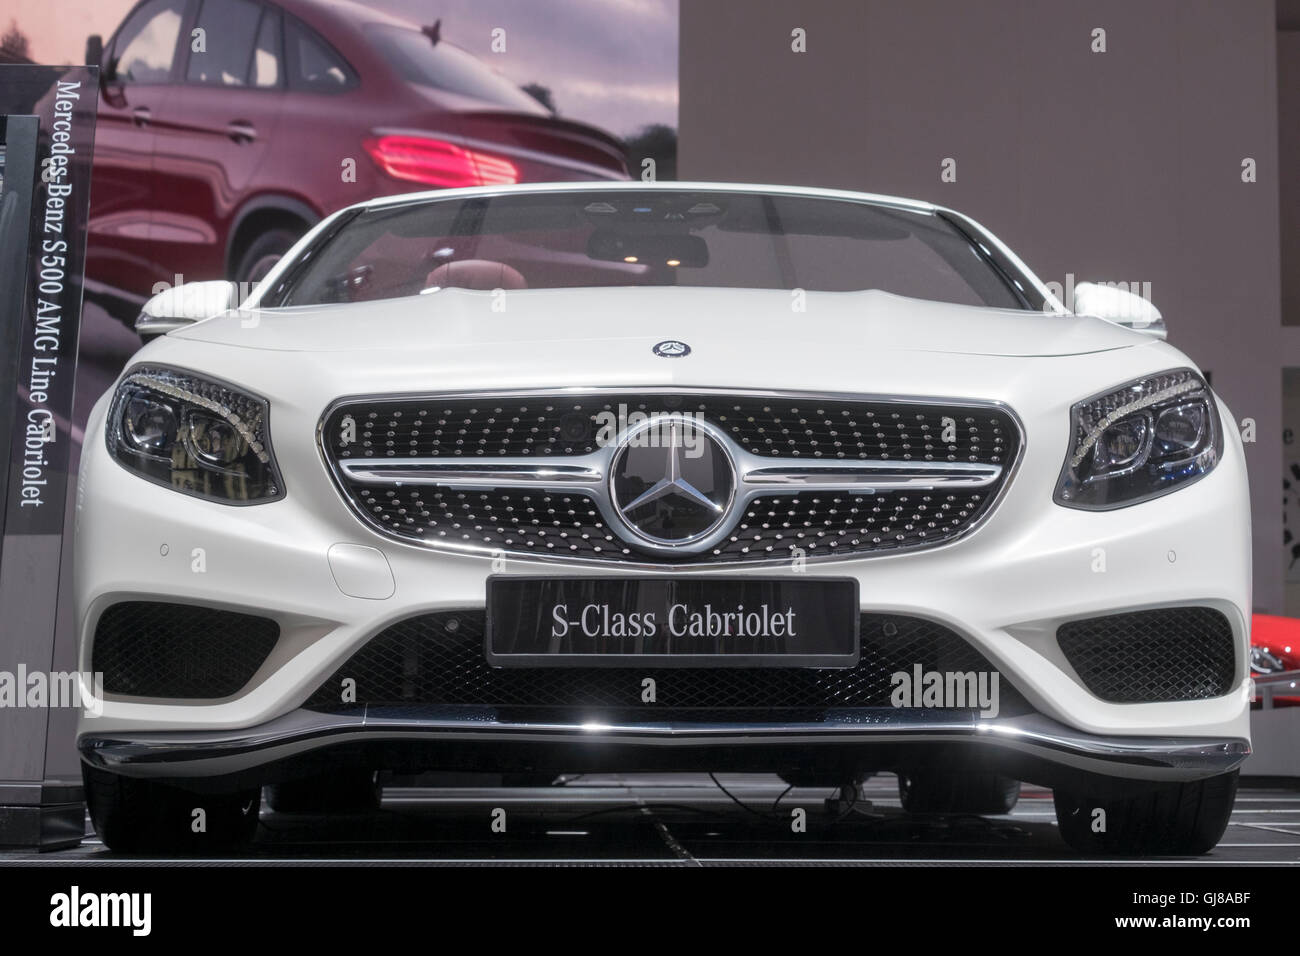 White Mercedes s class cabriolet on show stand at moving motor show goodwood festival of speed 2016. - Stock Image